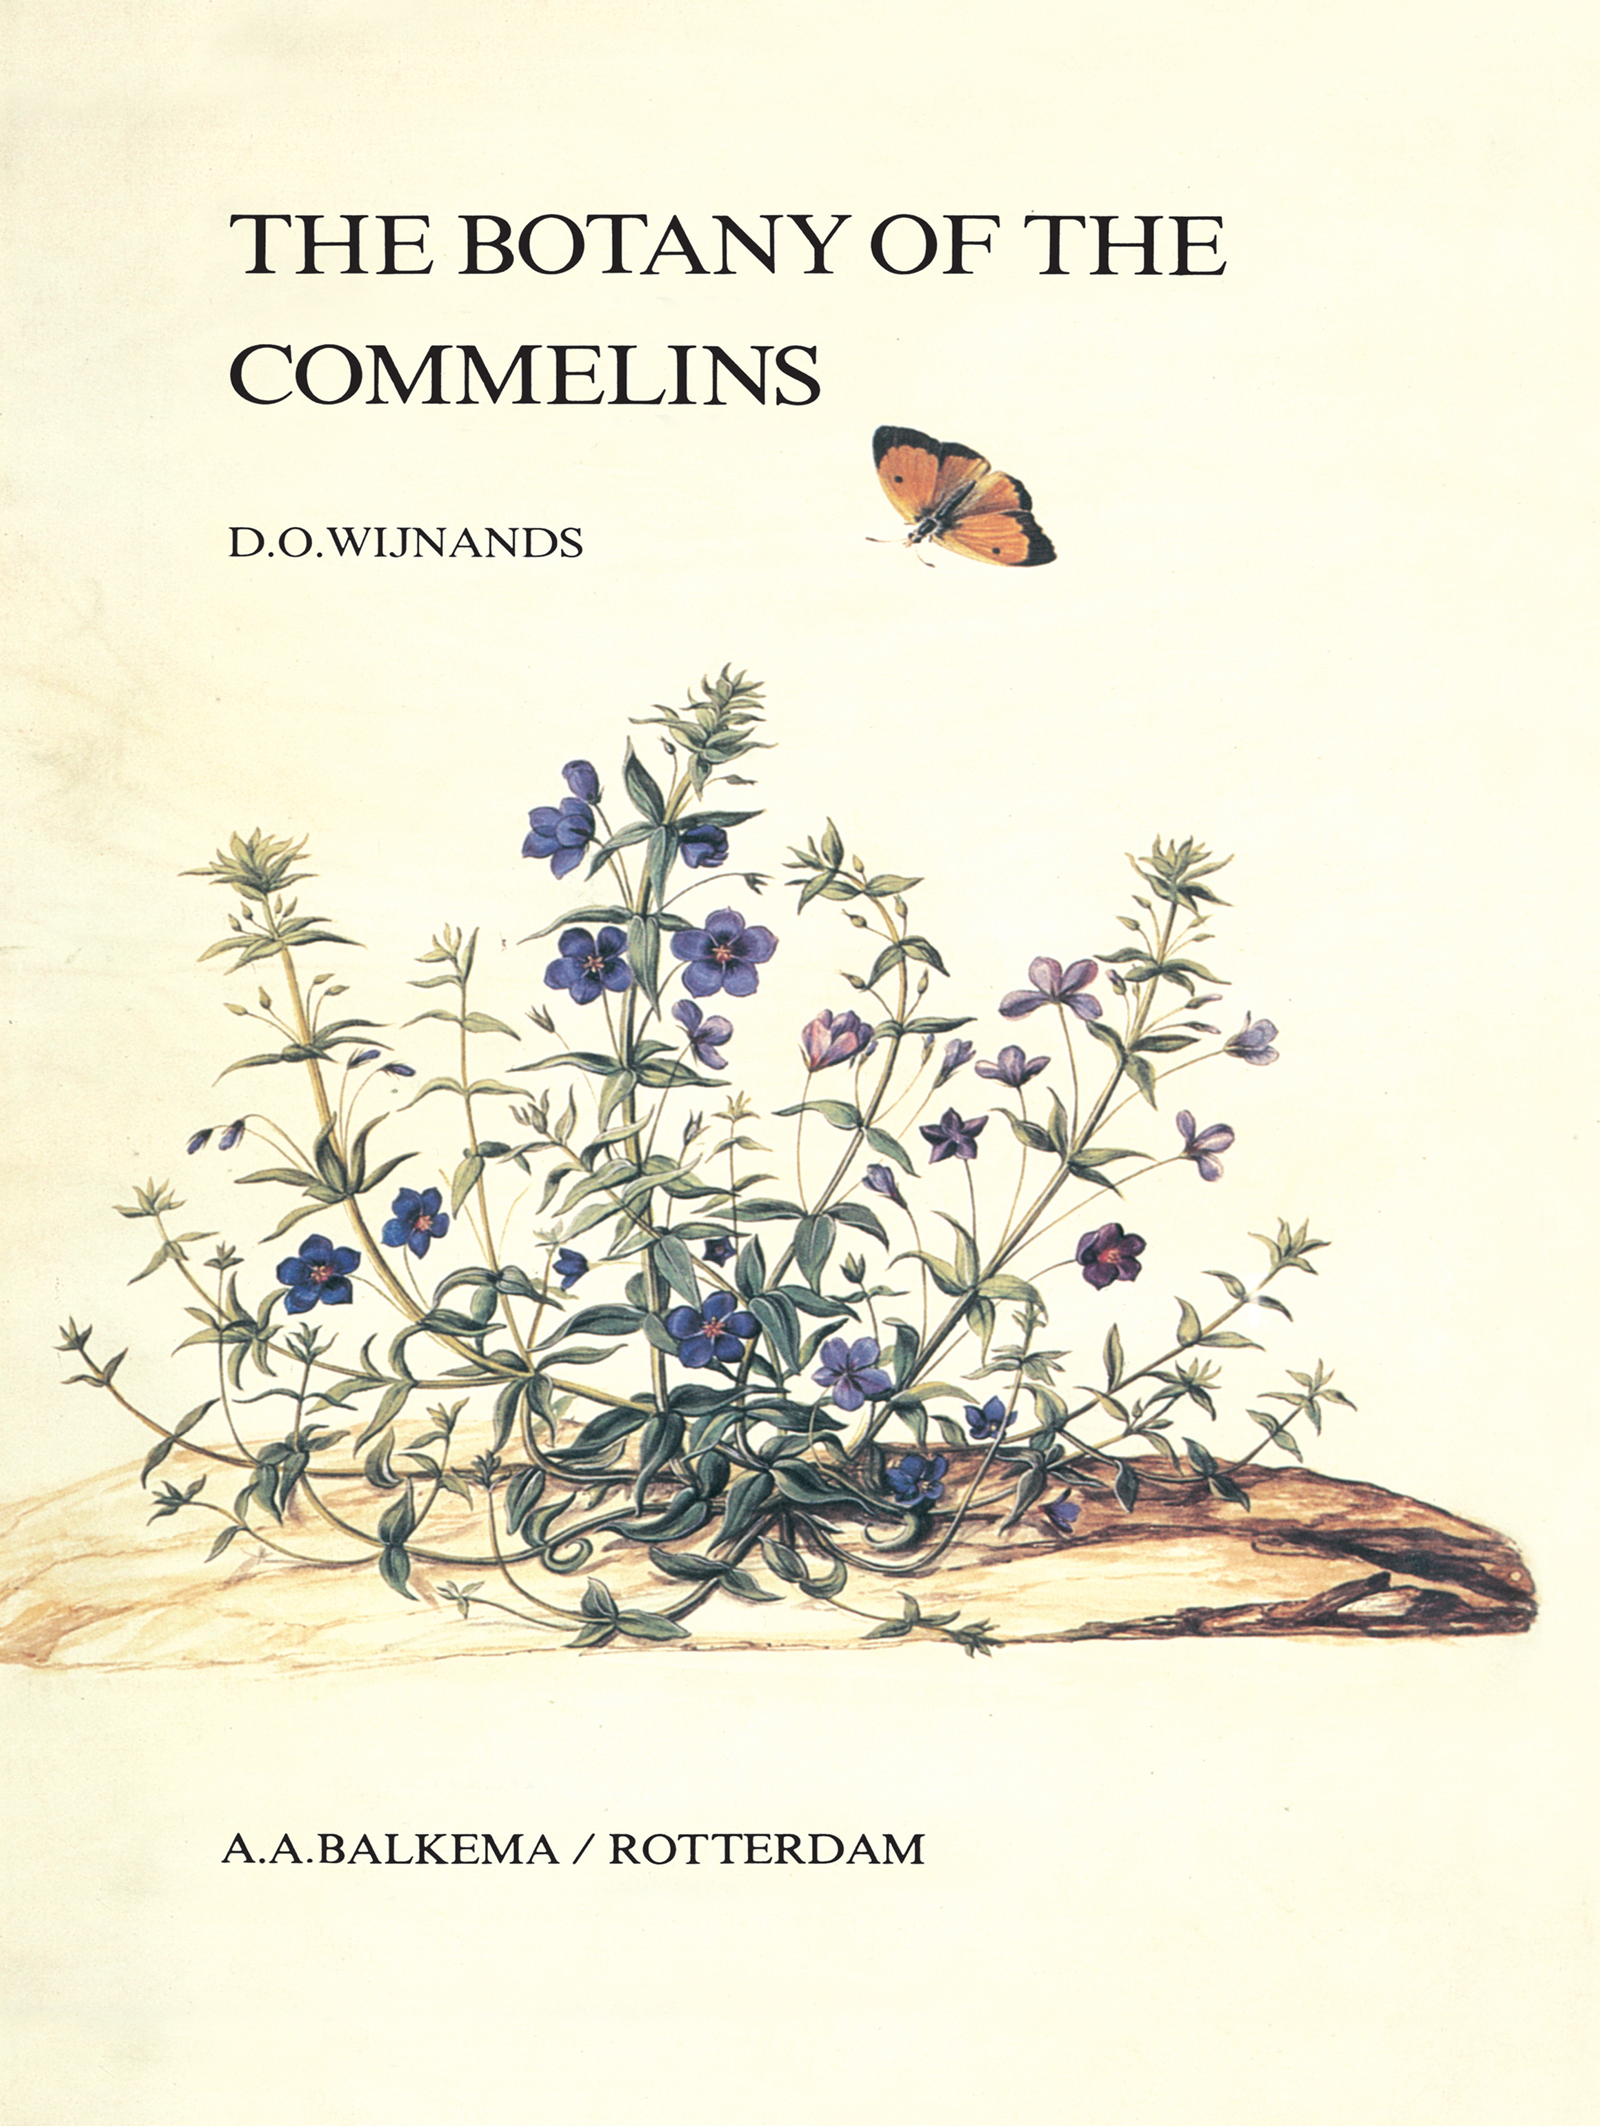 The Botany of the Commelins